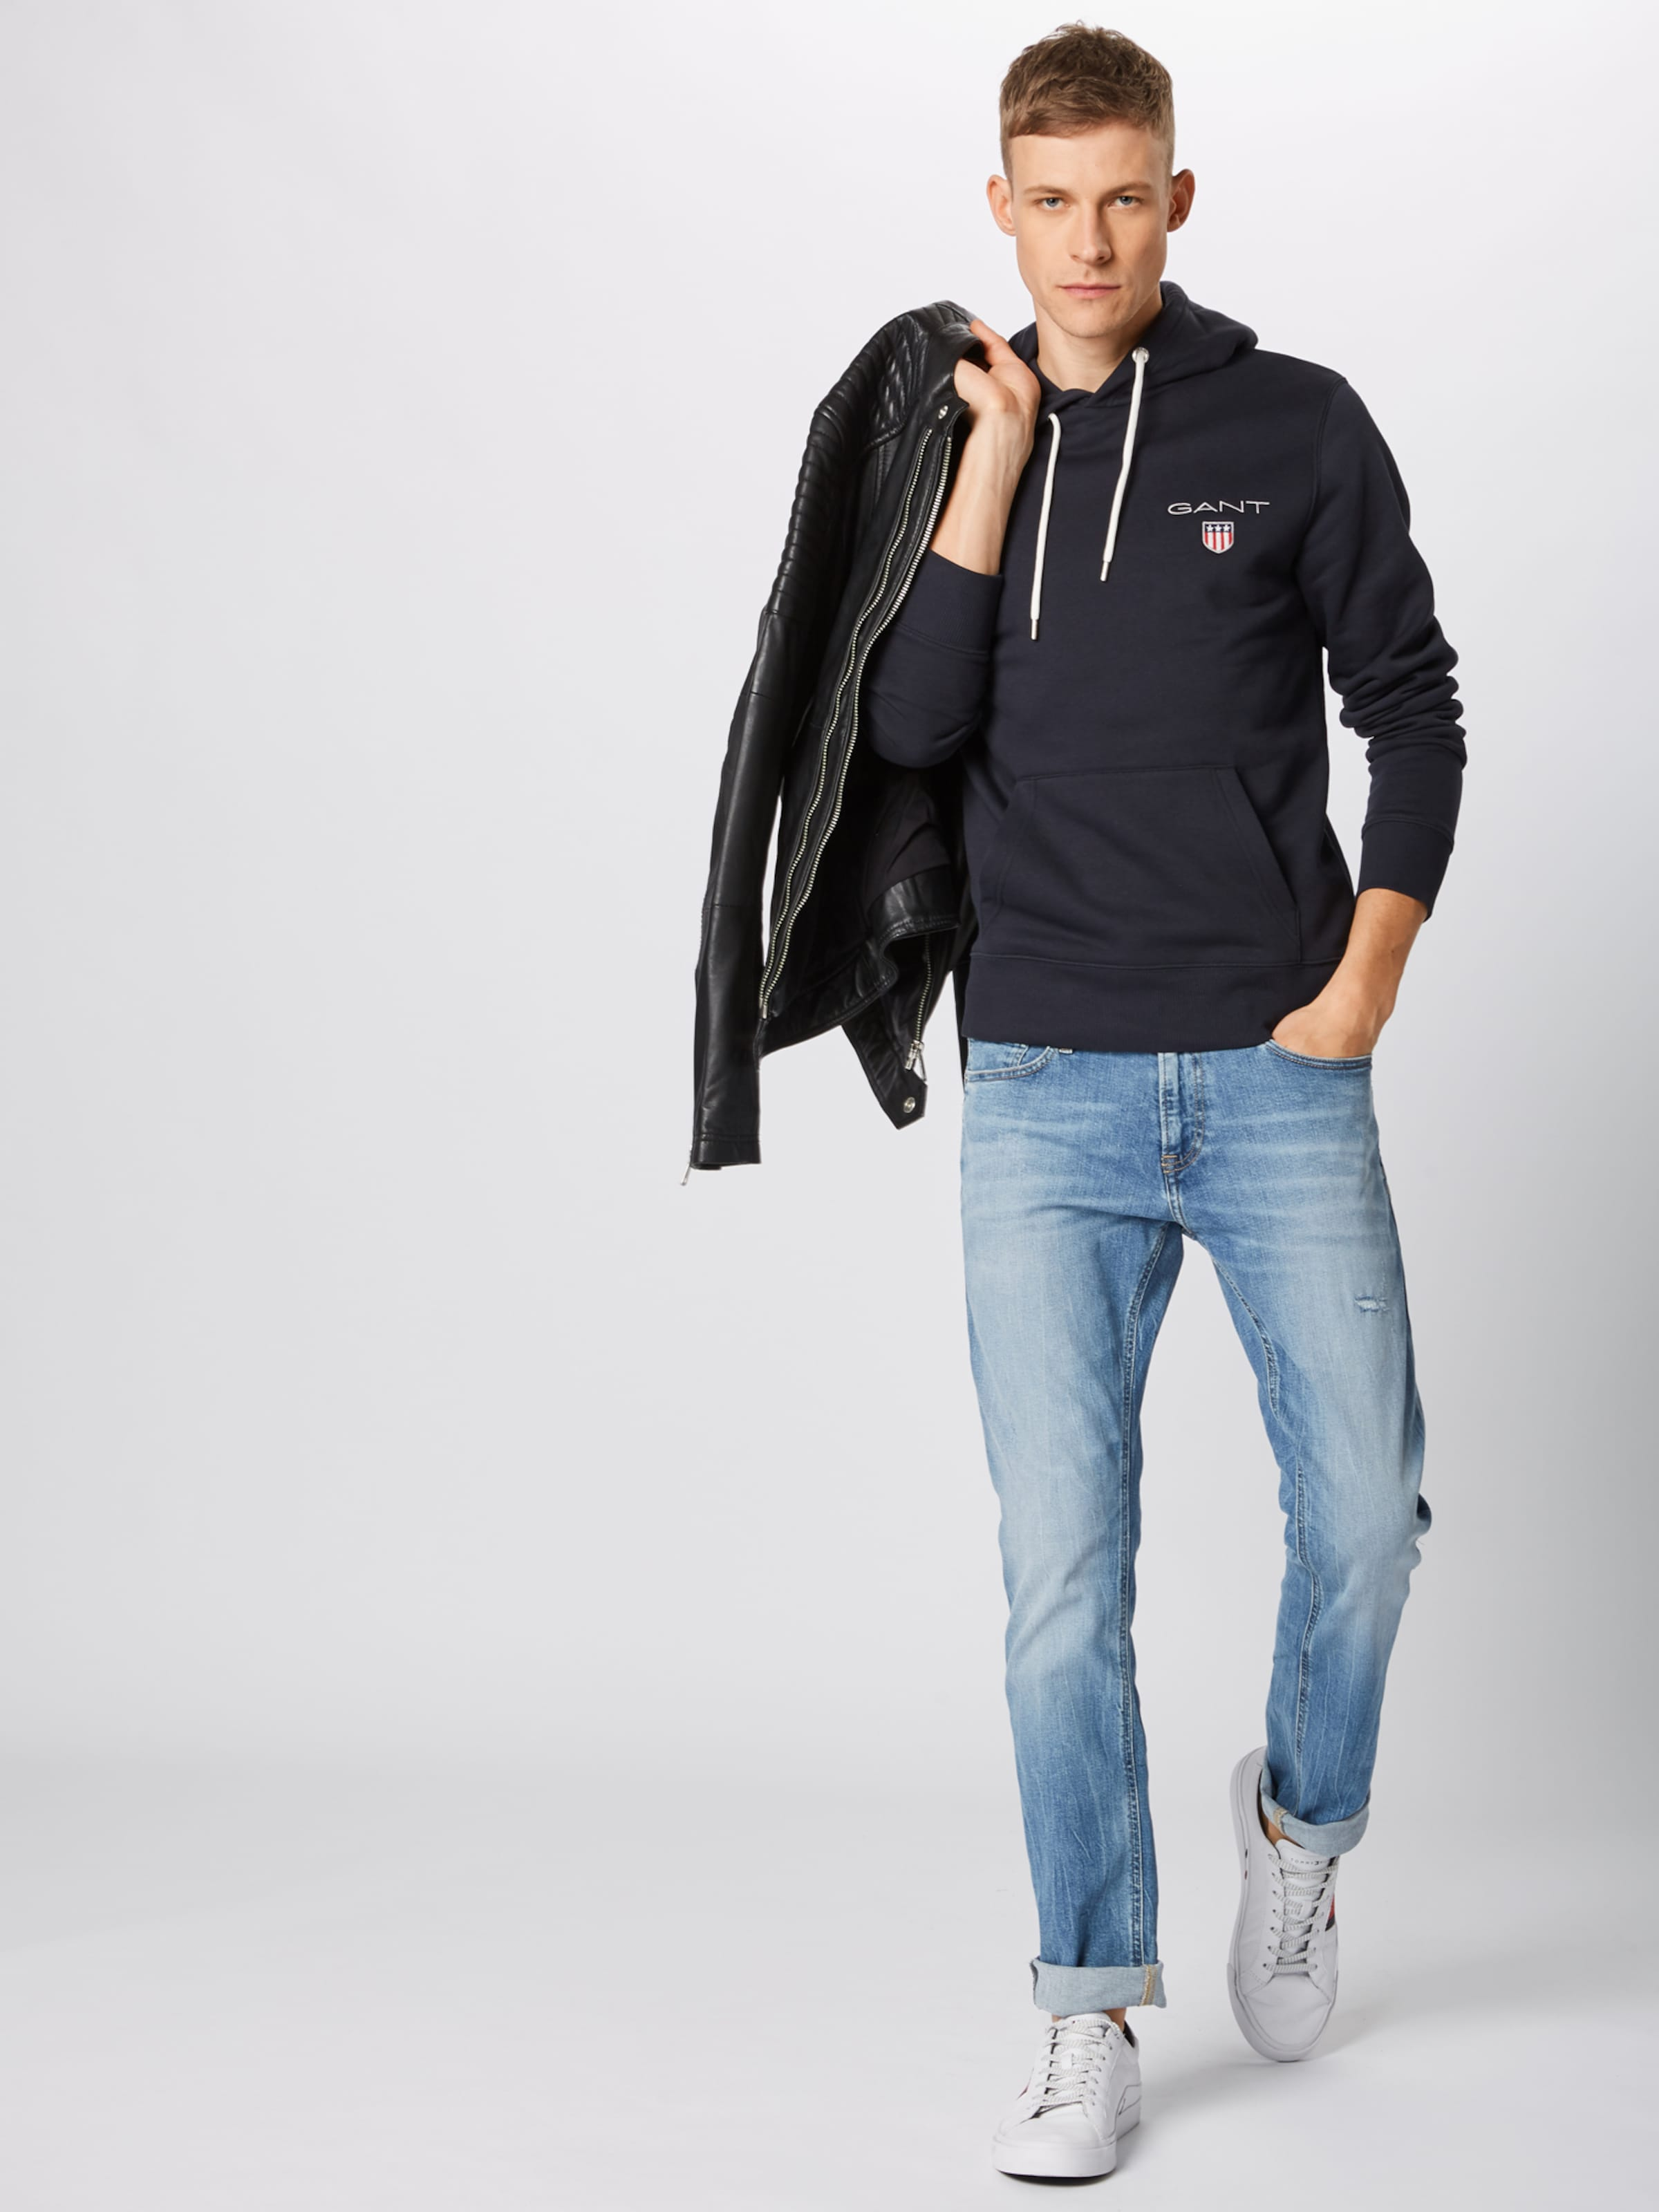 Sweat Gant Shield En Hoodie' shirt 'medium Noir 4RjALq35